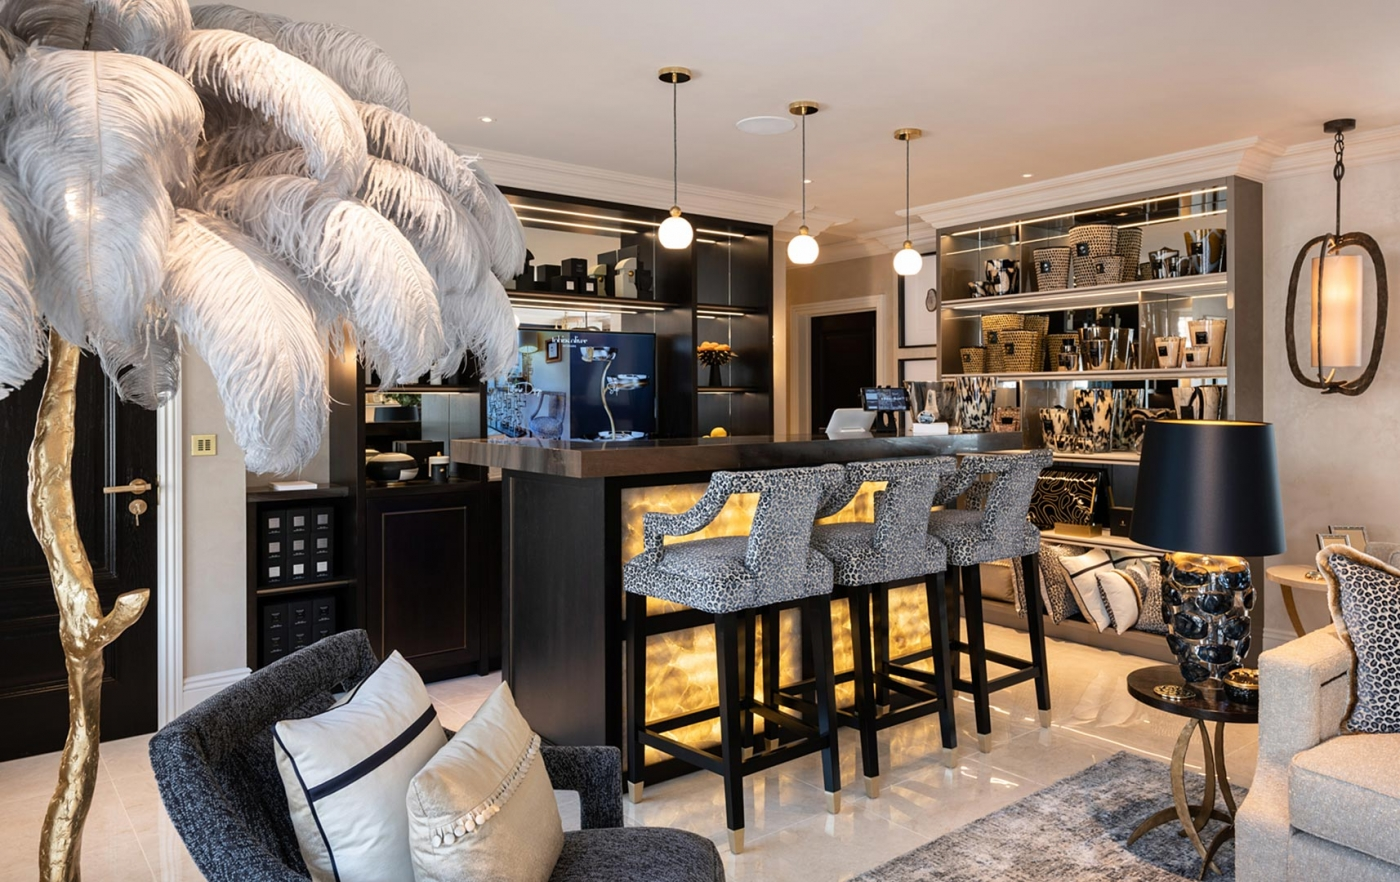 tobias oliver interiors Tobias Oliver Interiors – A Showroom That Brings Nature Into Your Home PNn7woRHmMSVJxvCiWnaQcONhPSw6JzvxXd8Gm3L 2 1400x882